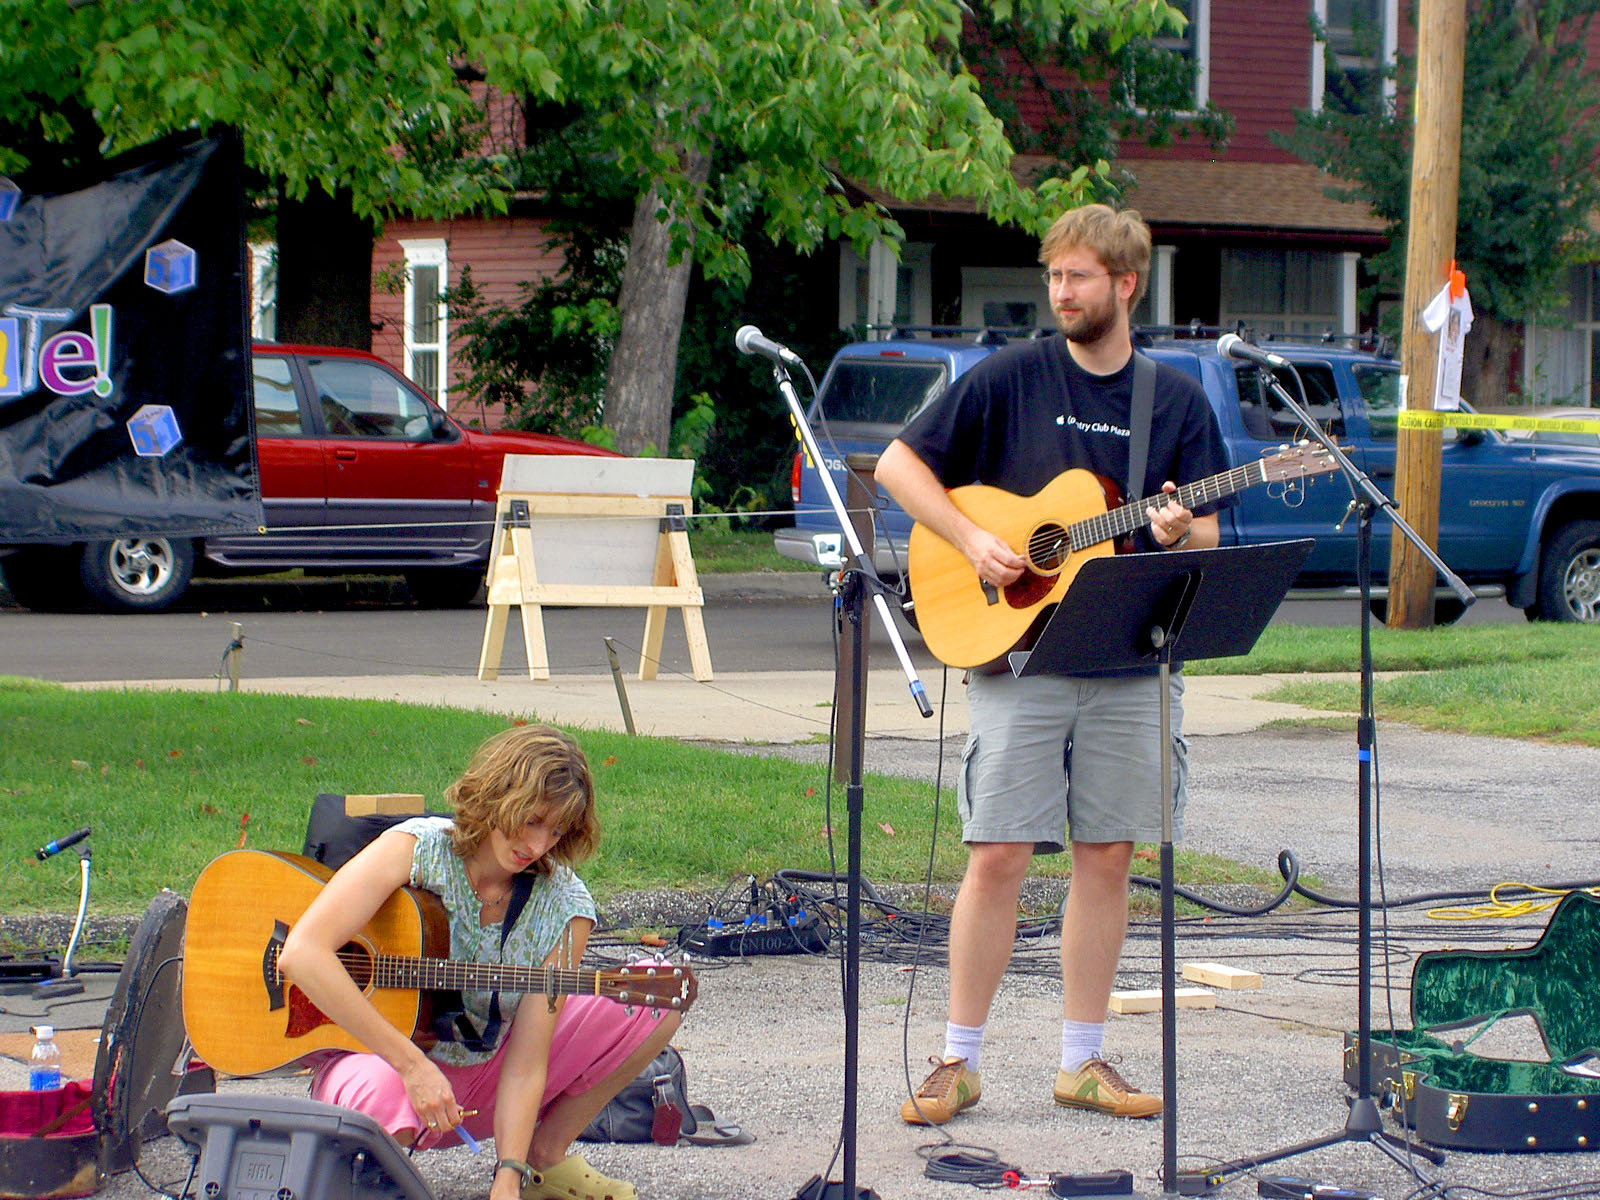 Don and Lori Chaffer, holding guitars outside on a sidewalk